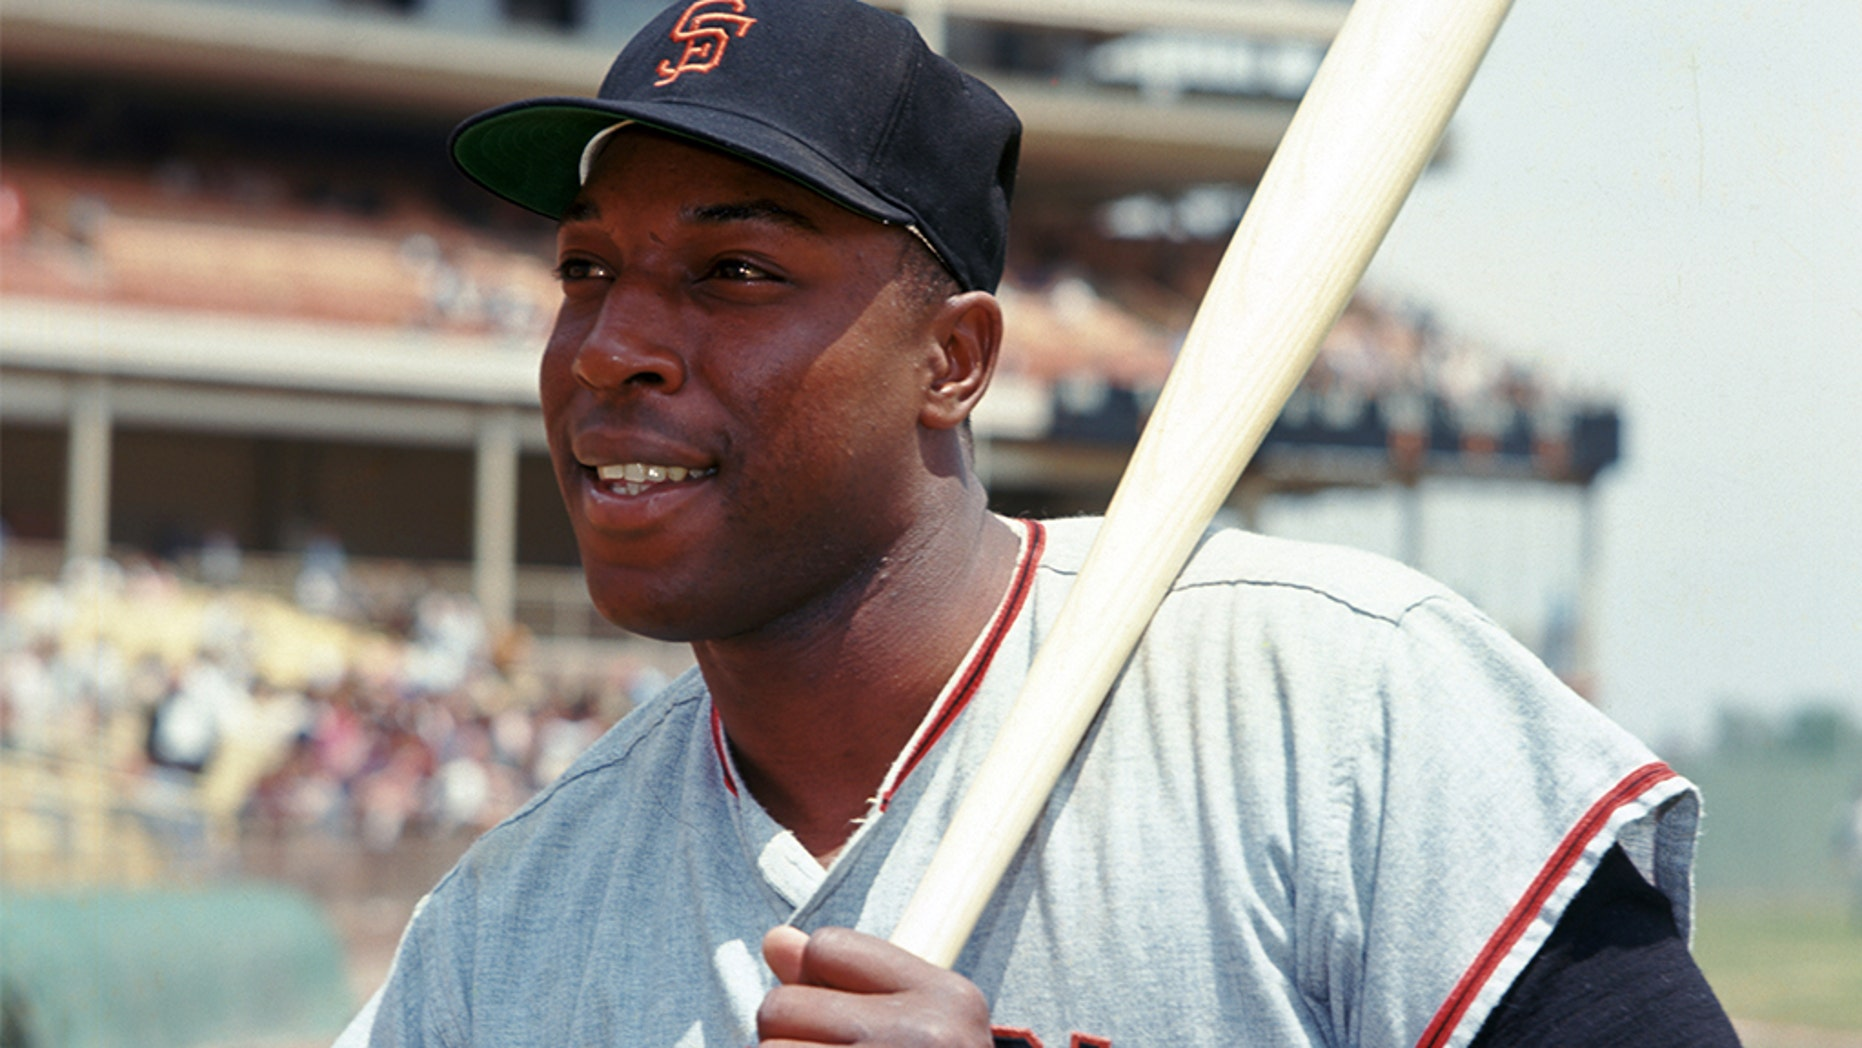 Giants Hall of Famer Willie McCovey has died at age 80